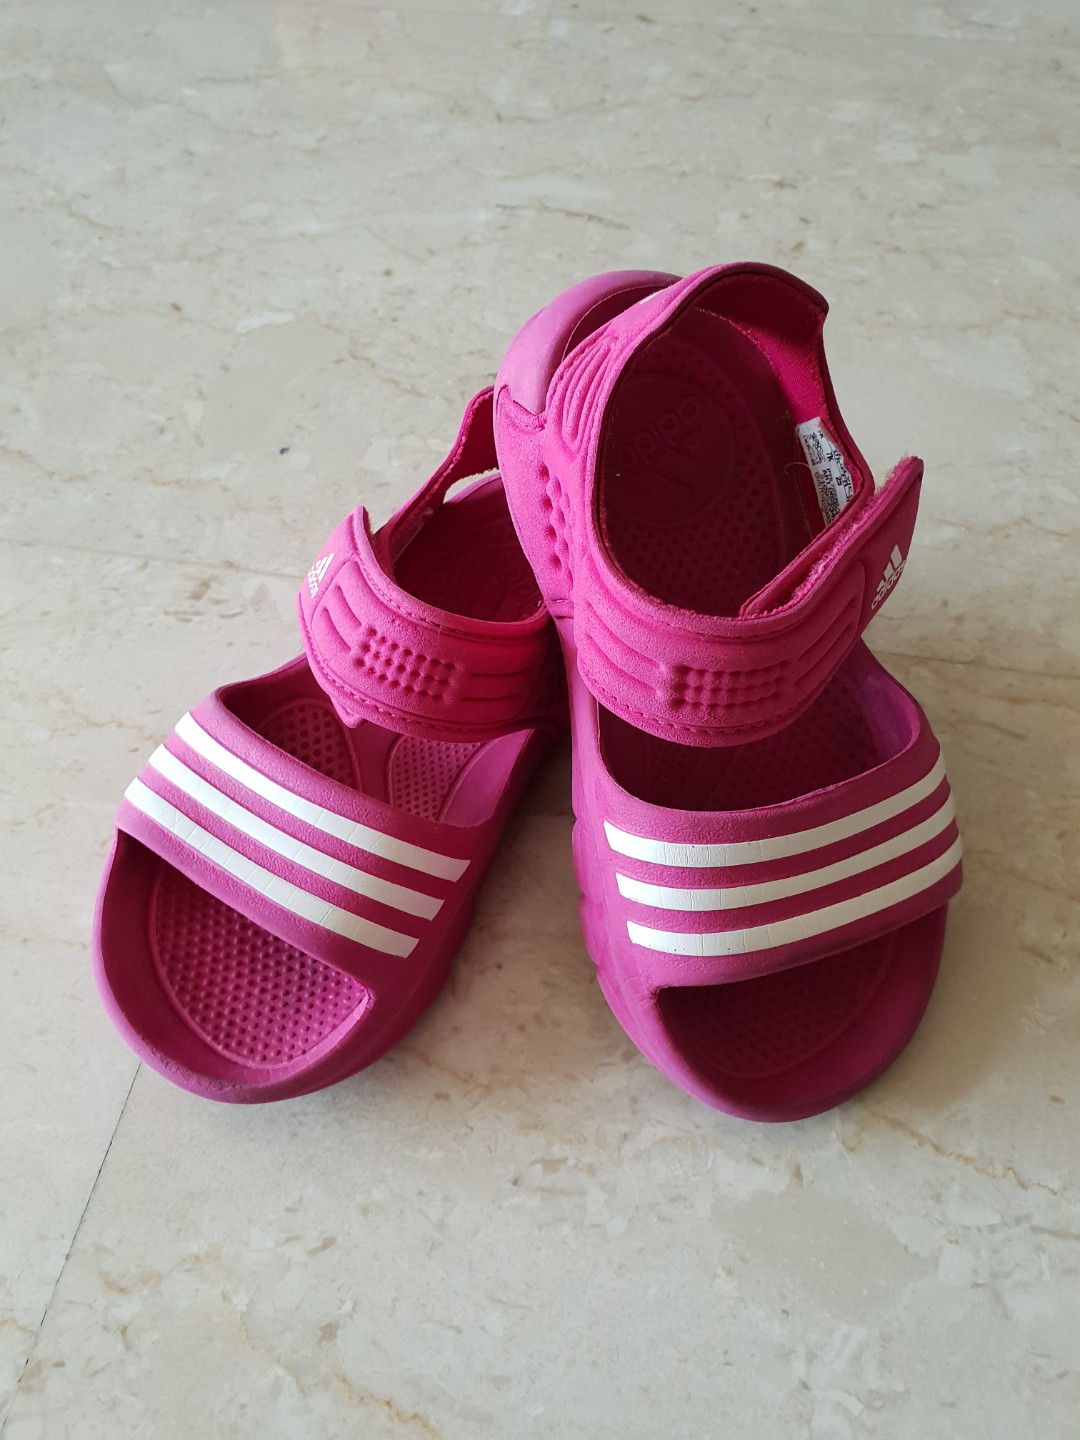 8ea3692c4f09 Adidas Sandals Pink Lightly used